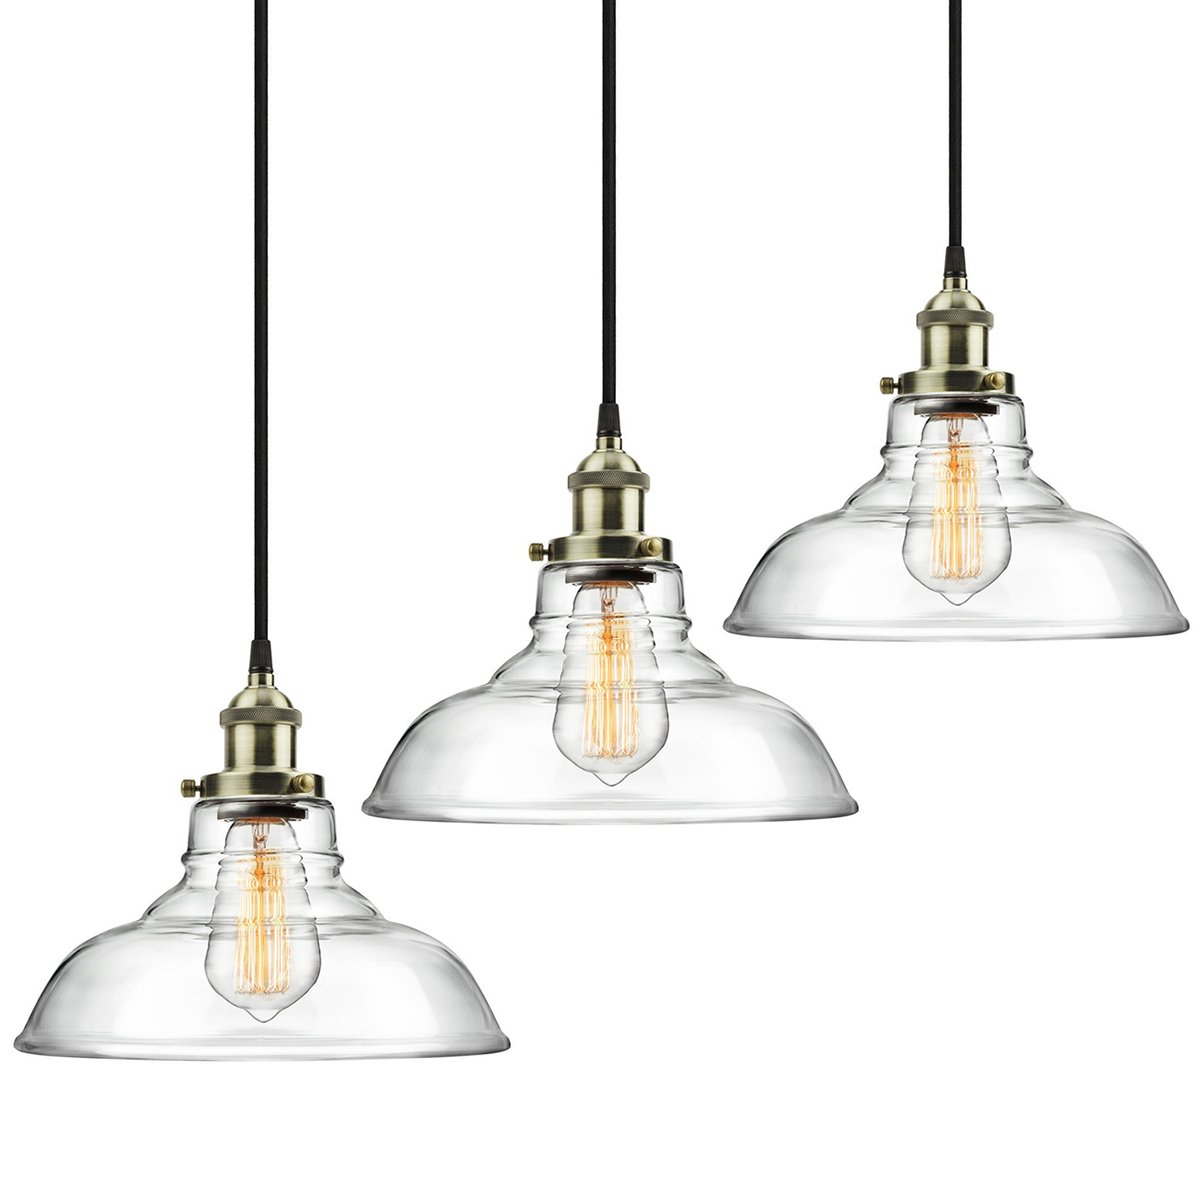 3-Pack Modern Industrial Vintage Glass Pendant Light - MKLOT Minimalist Eco-Power Edison Style 11.02'' Wide Hanging Chandelier Ceiling Lighting Mounted Fixture with Clear Glass